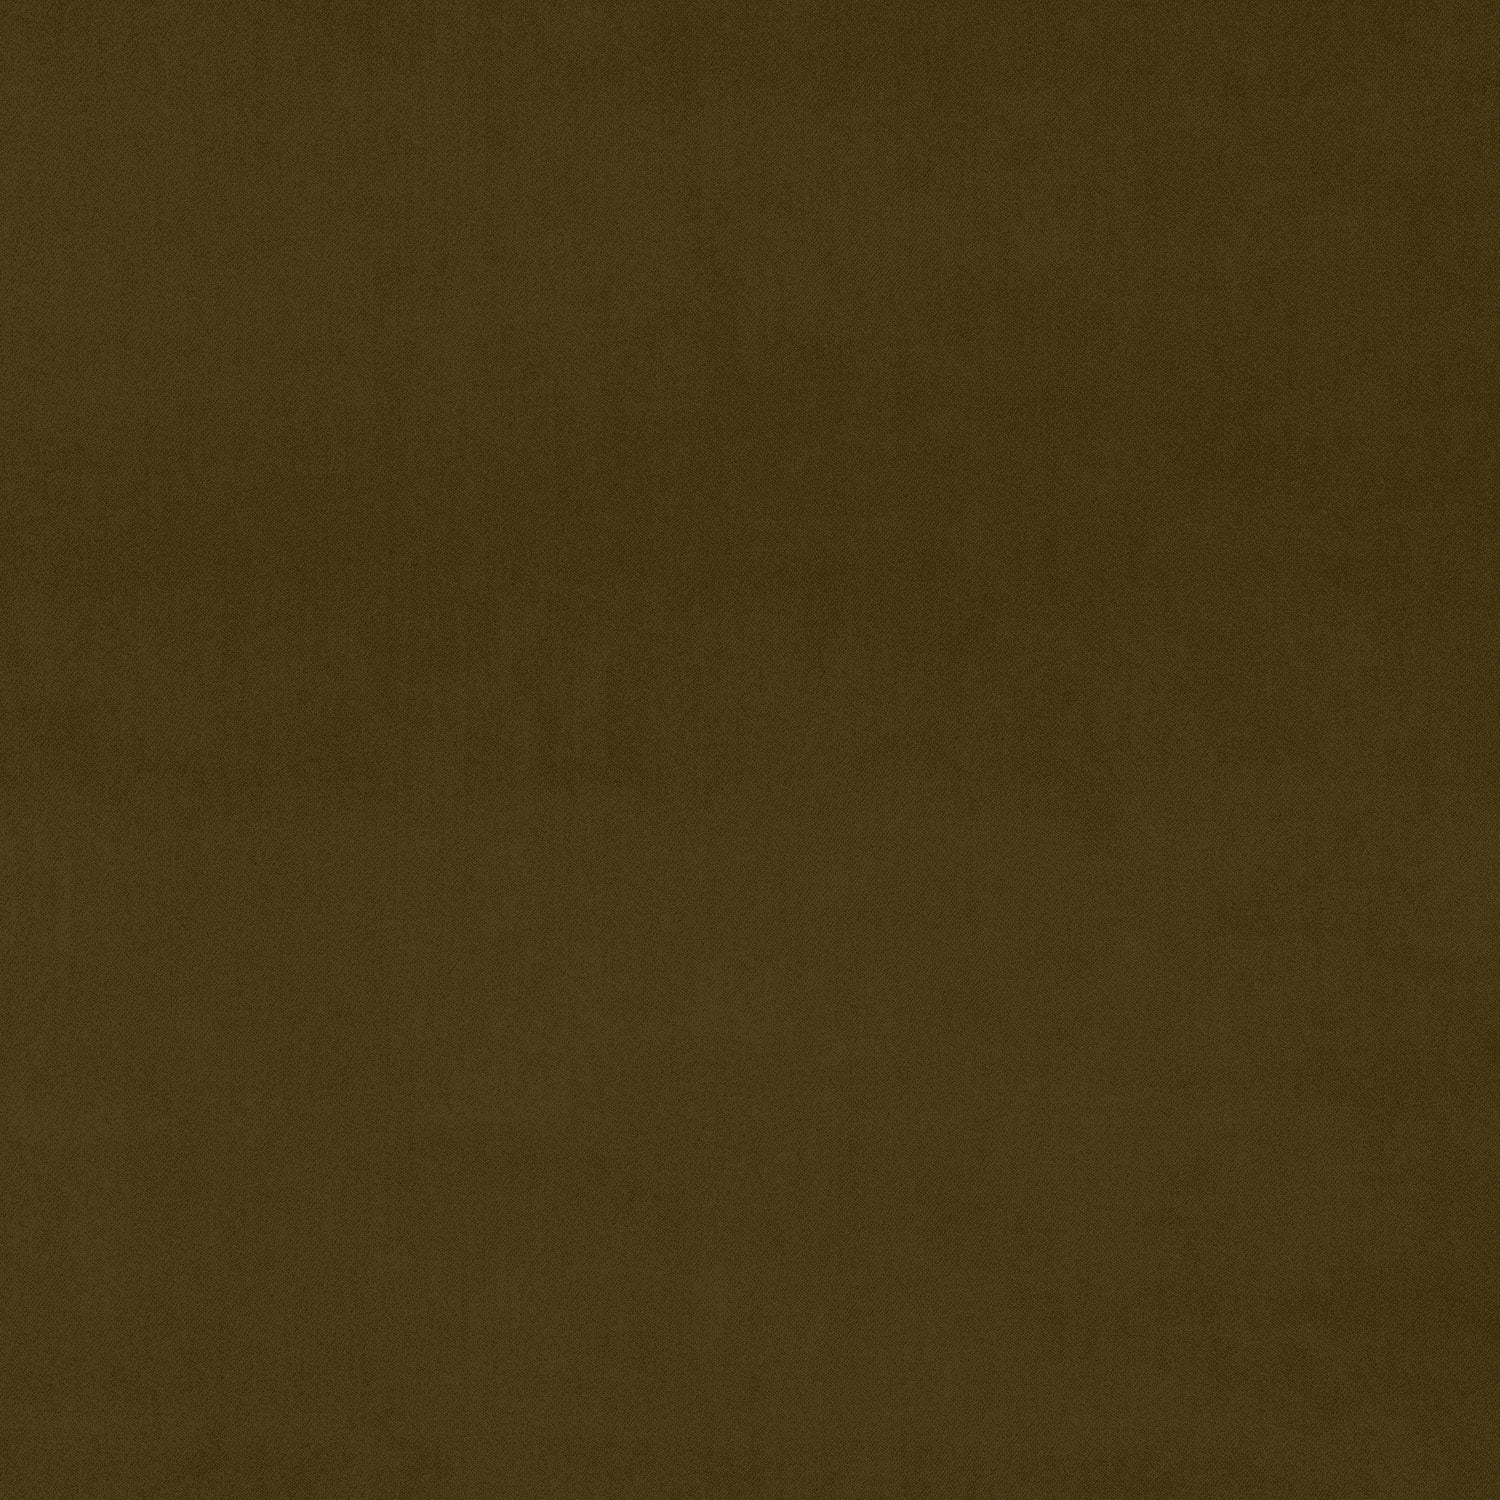 Plain khaki green velvet fabric for curtains and upholstery with a stain resistant finish